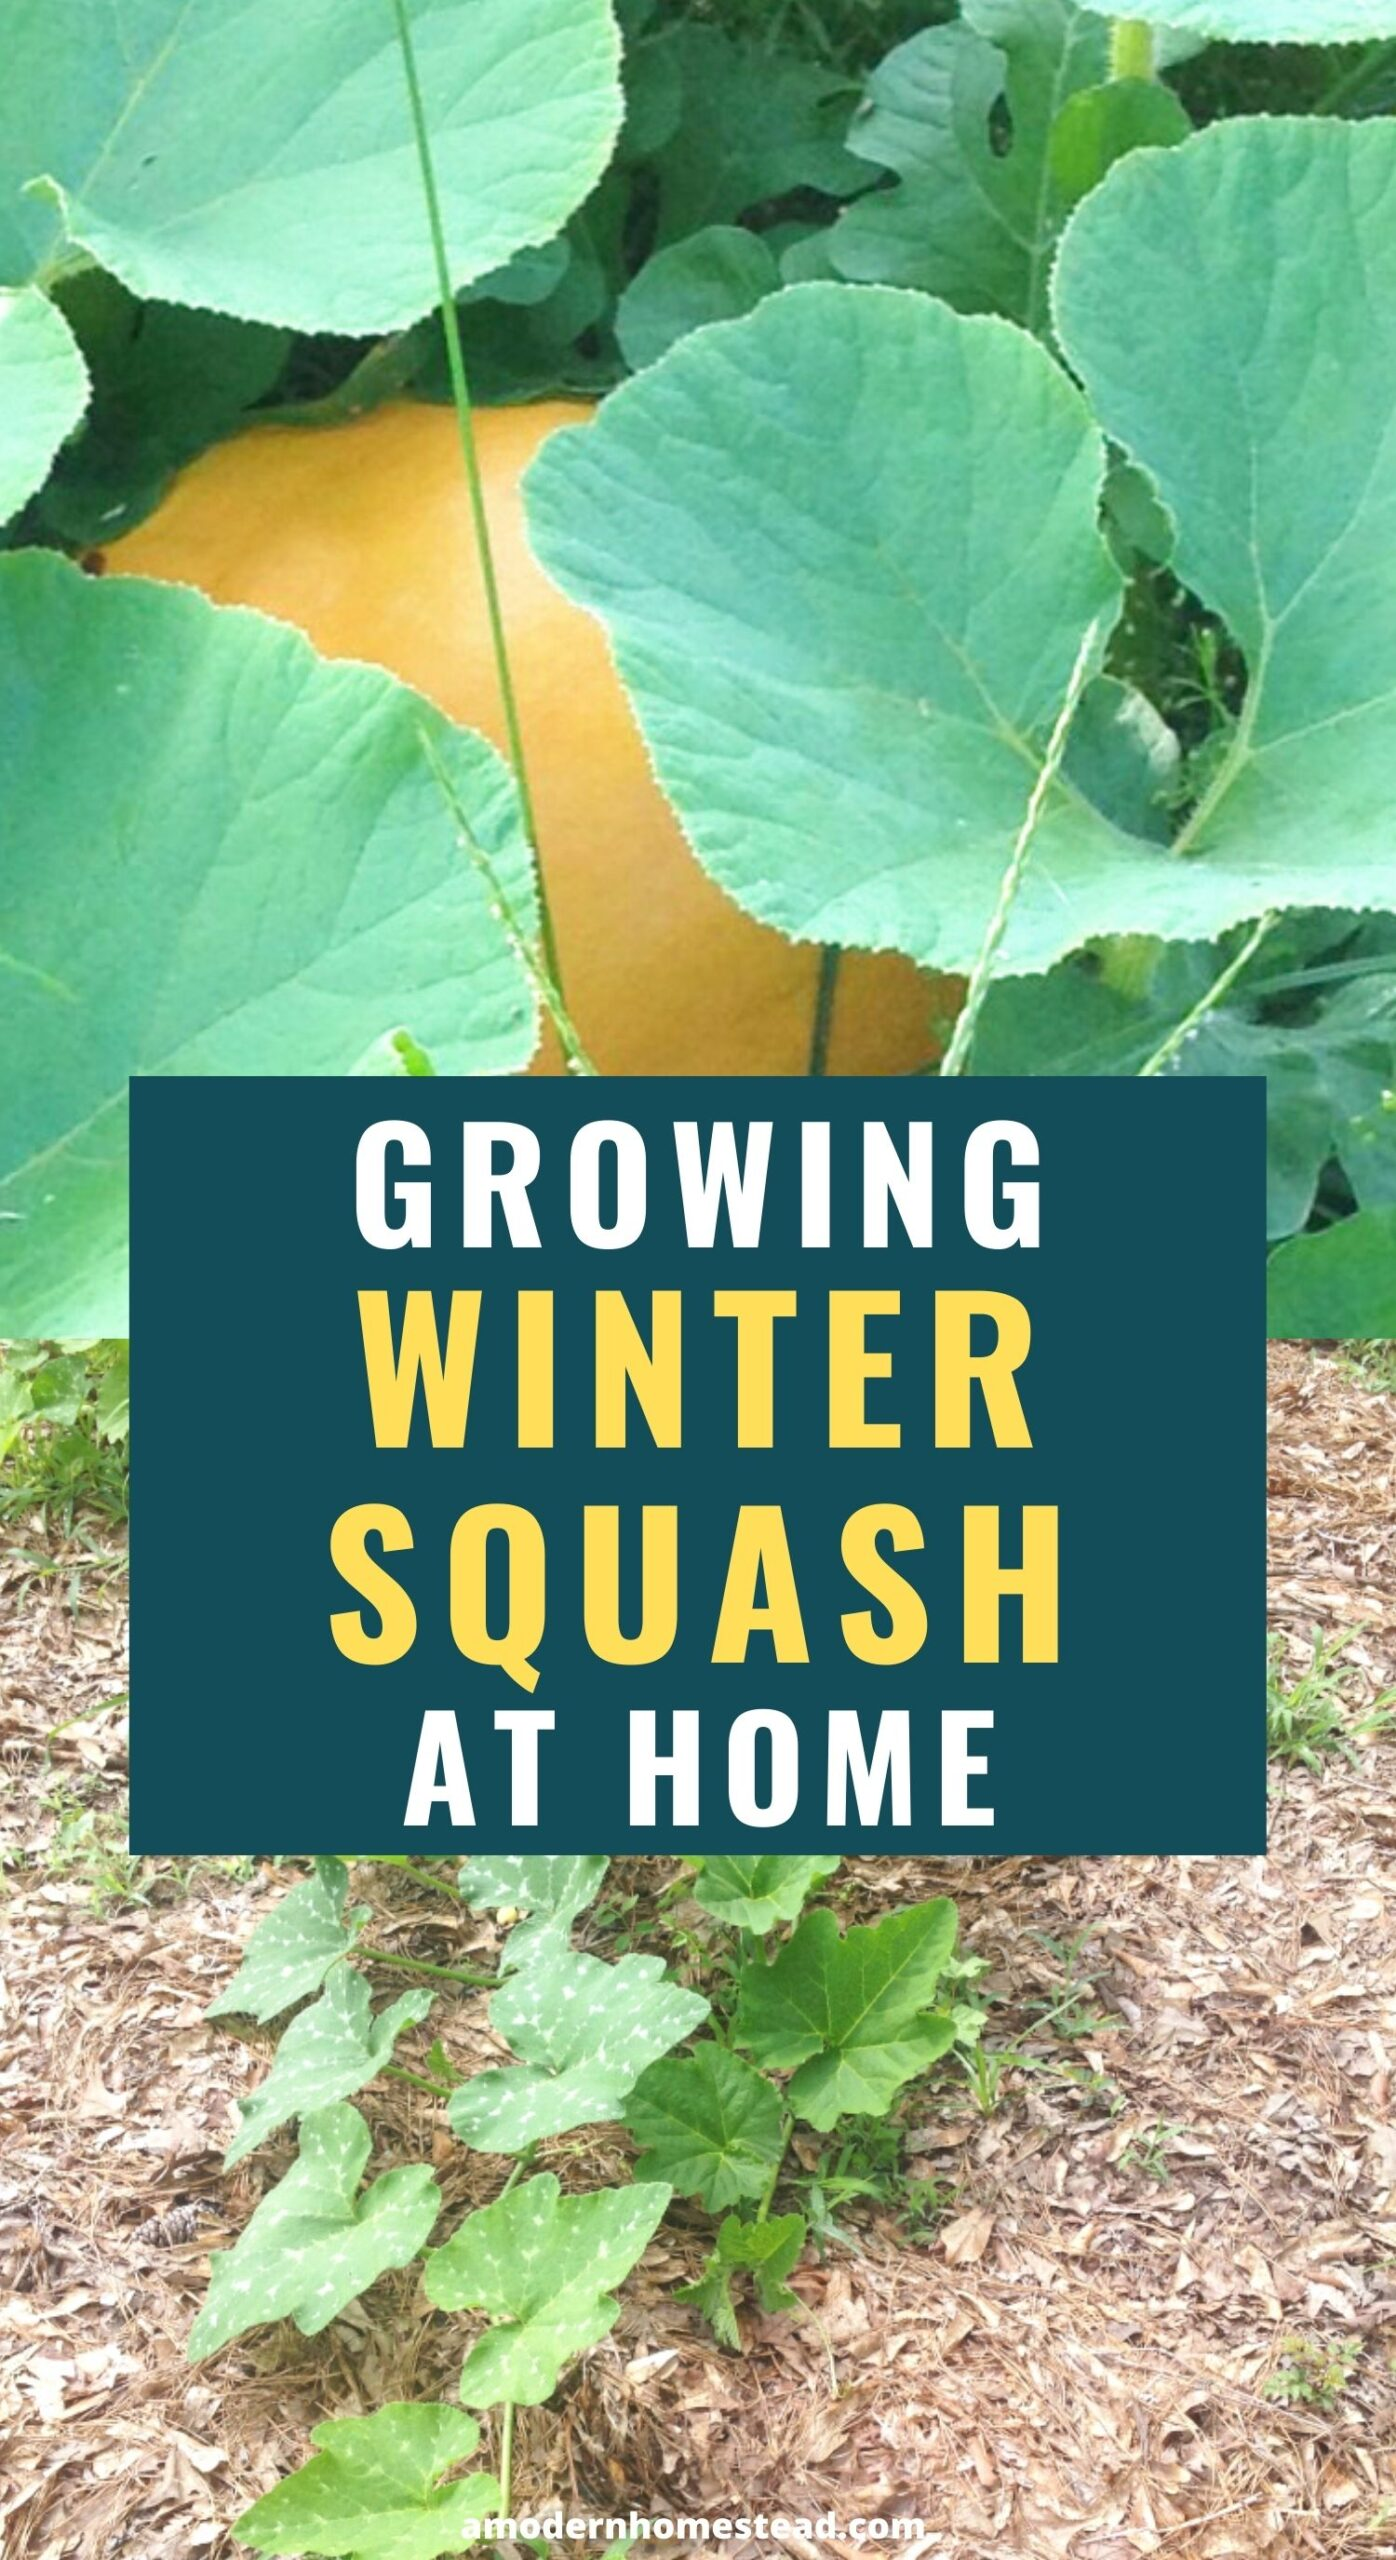 a collage featuring phases of growing winter squash varieties including the squash vine growing, a hidden squash peeking out, and a jar of seeds for winter squash seed storage